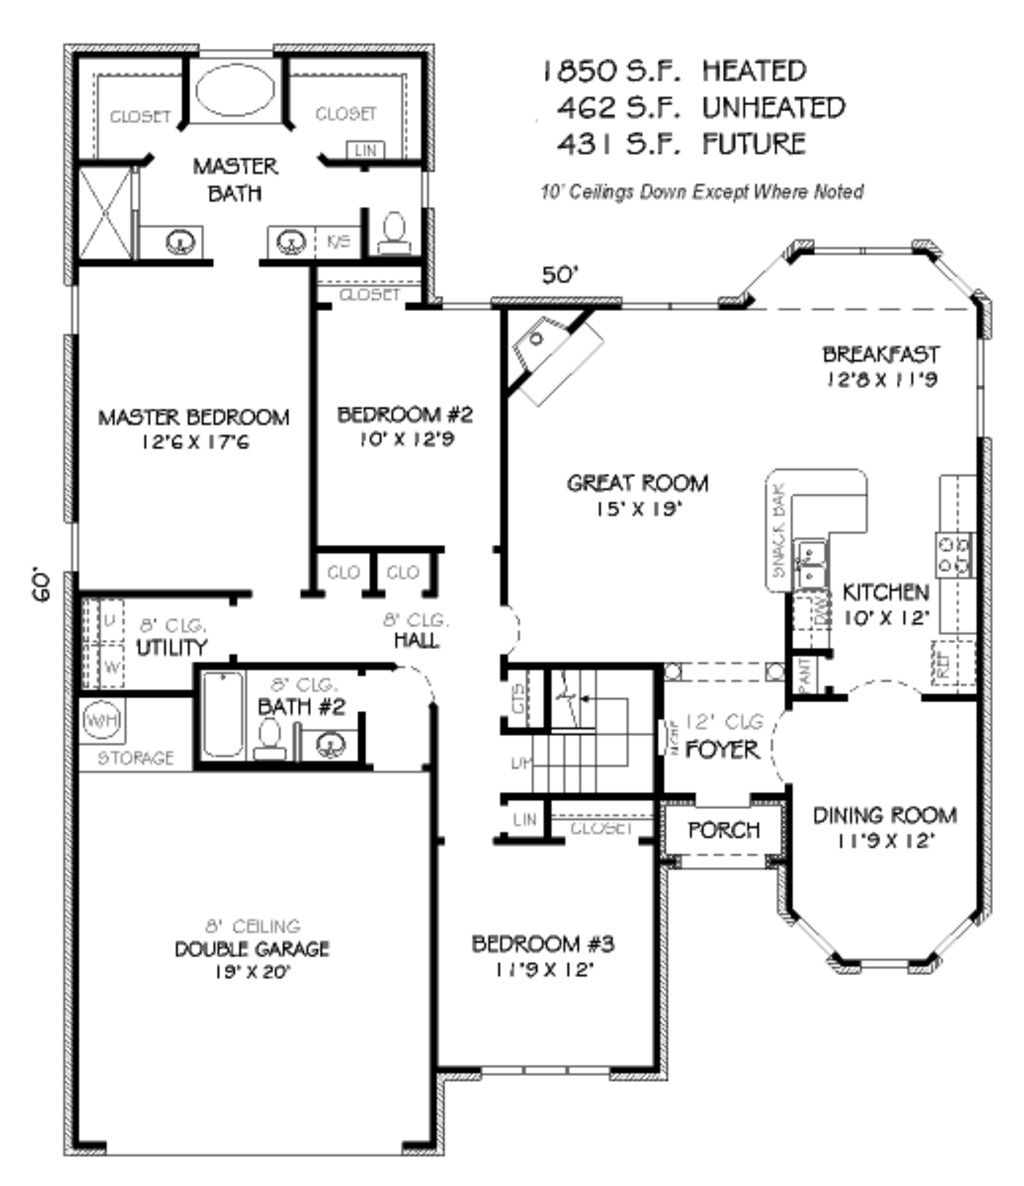 Side Split House Plans The Image Kid: side split house plans